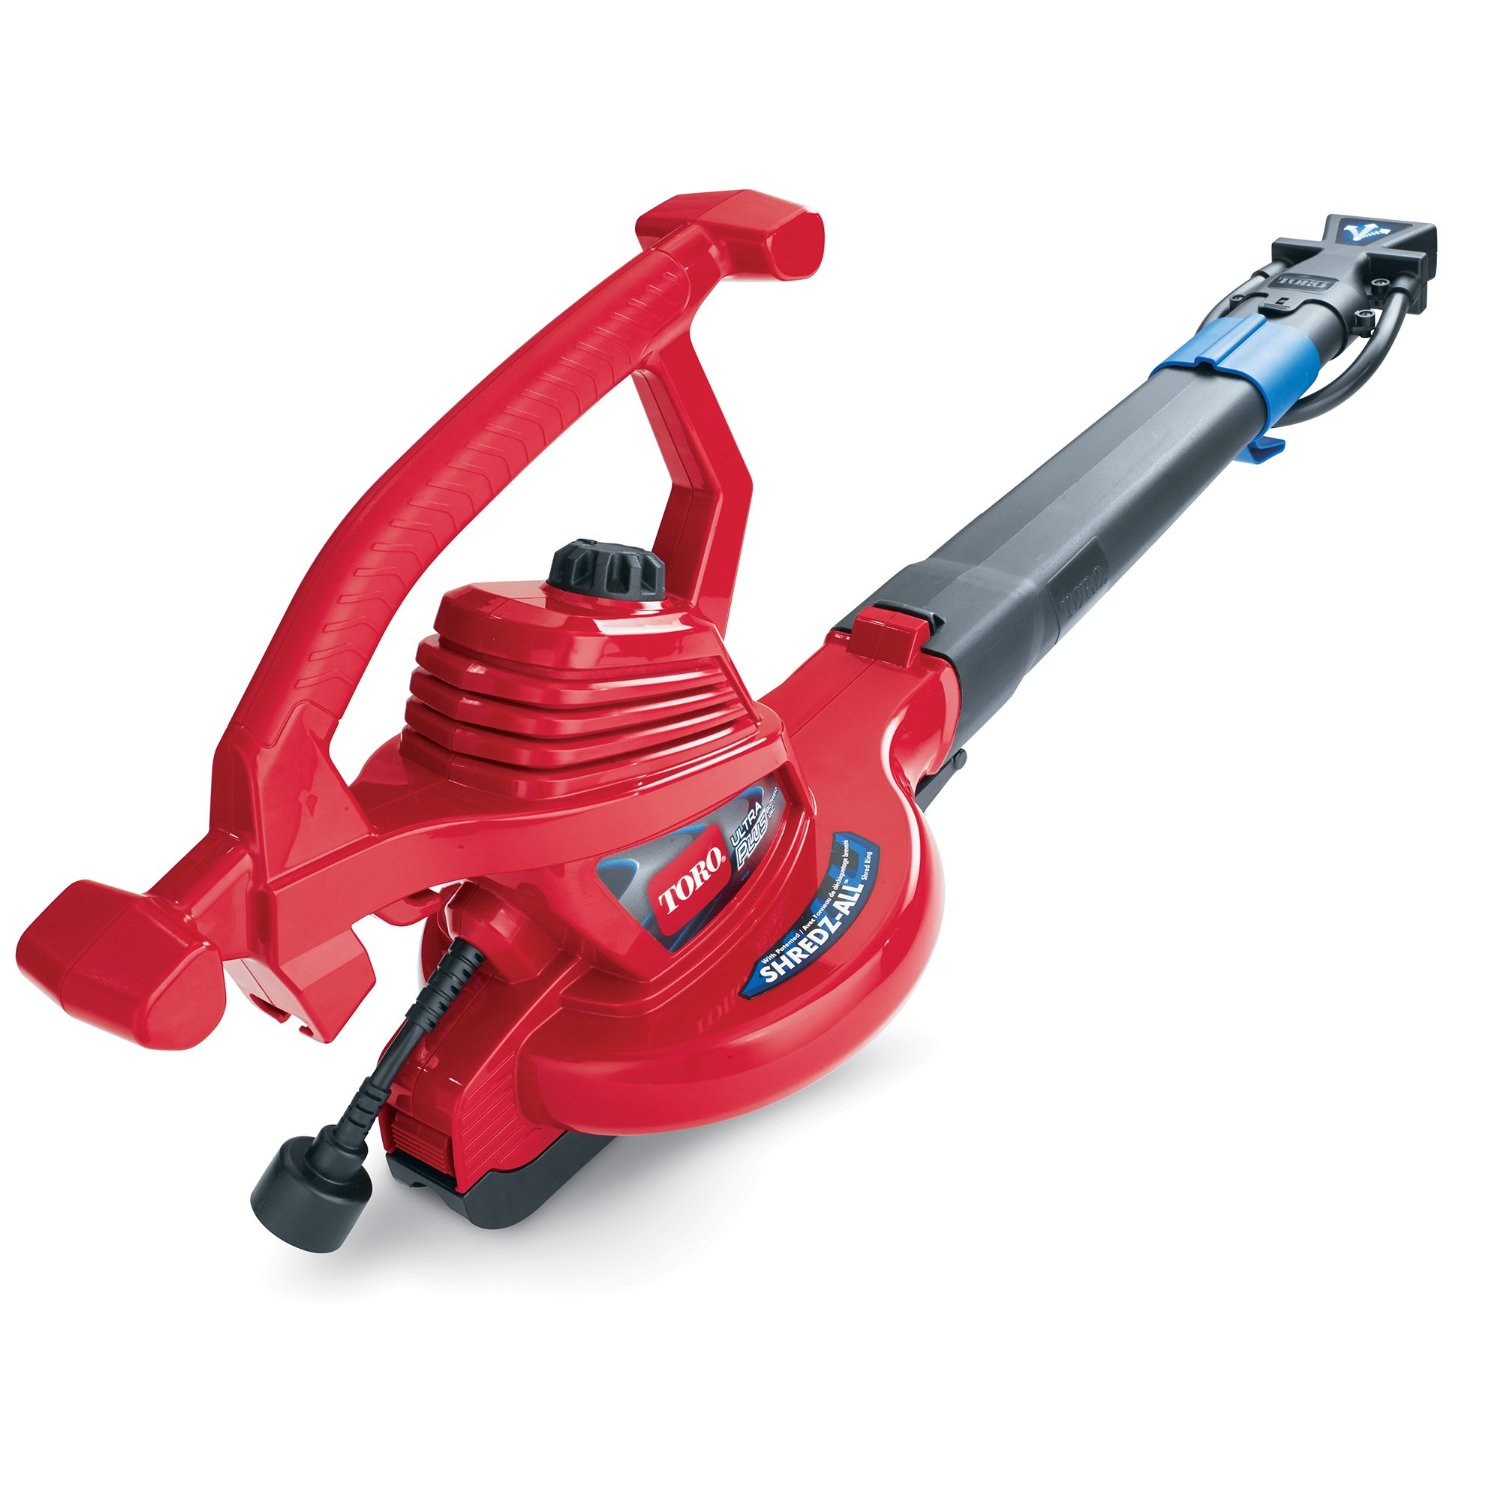 Best Electric Leaf Blower Brands : Best electric leaf blowers updated outdoor ideas